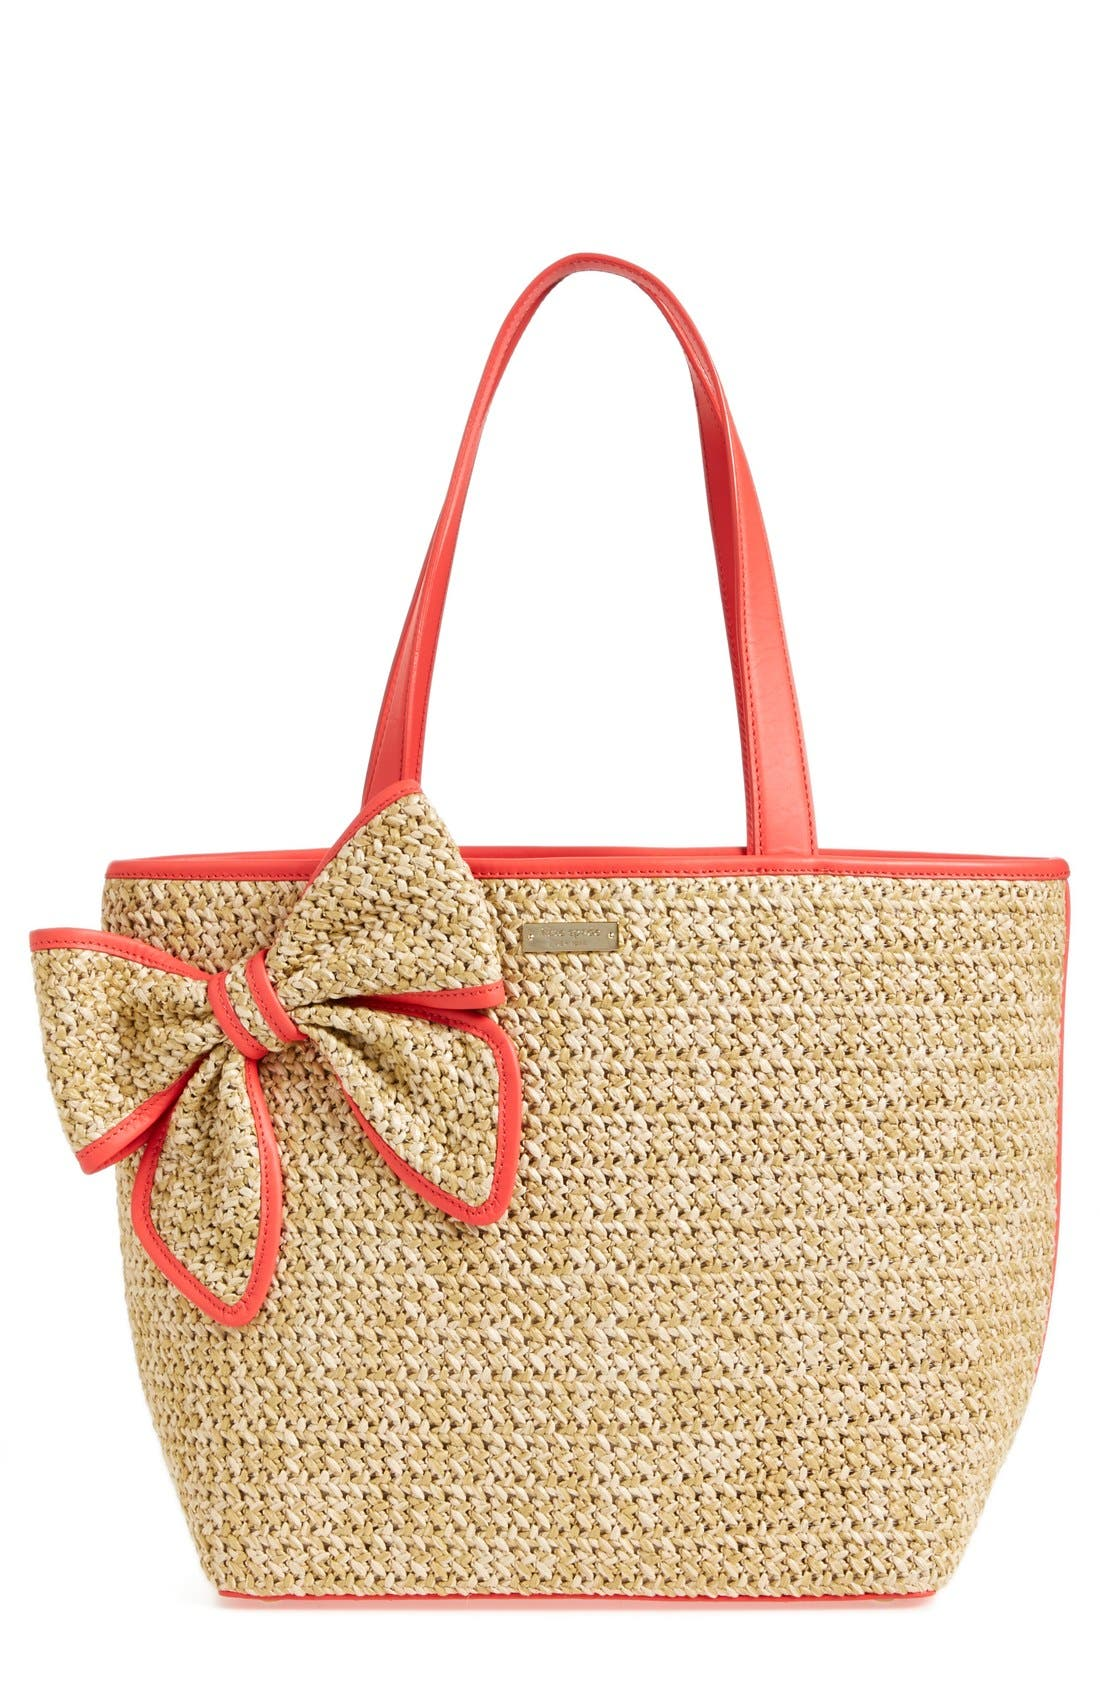 Main Image - kate spade 'belle place' straw tote